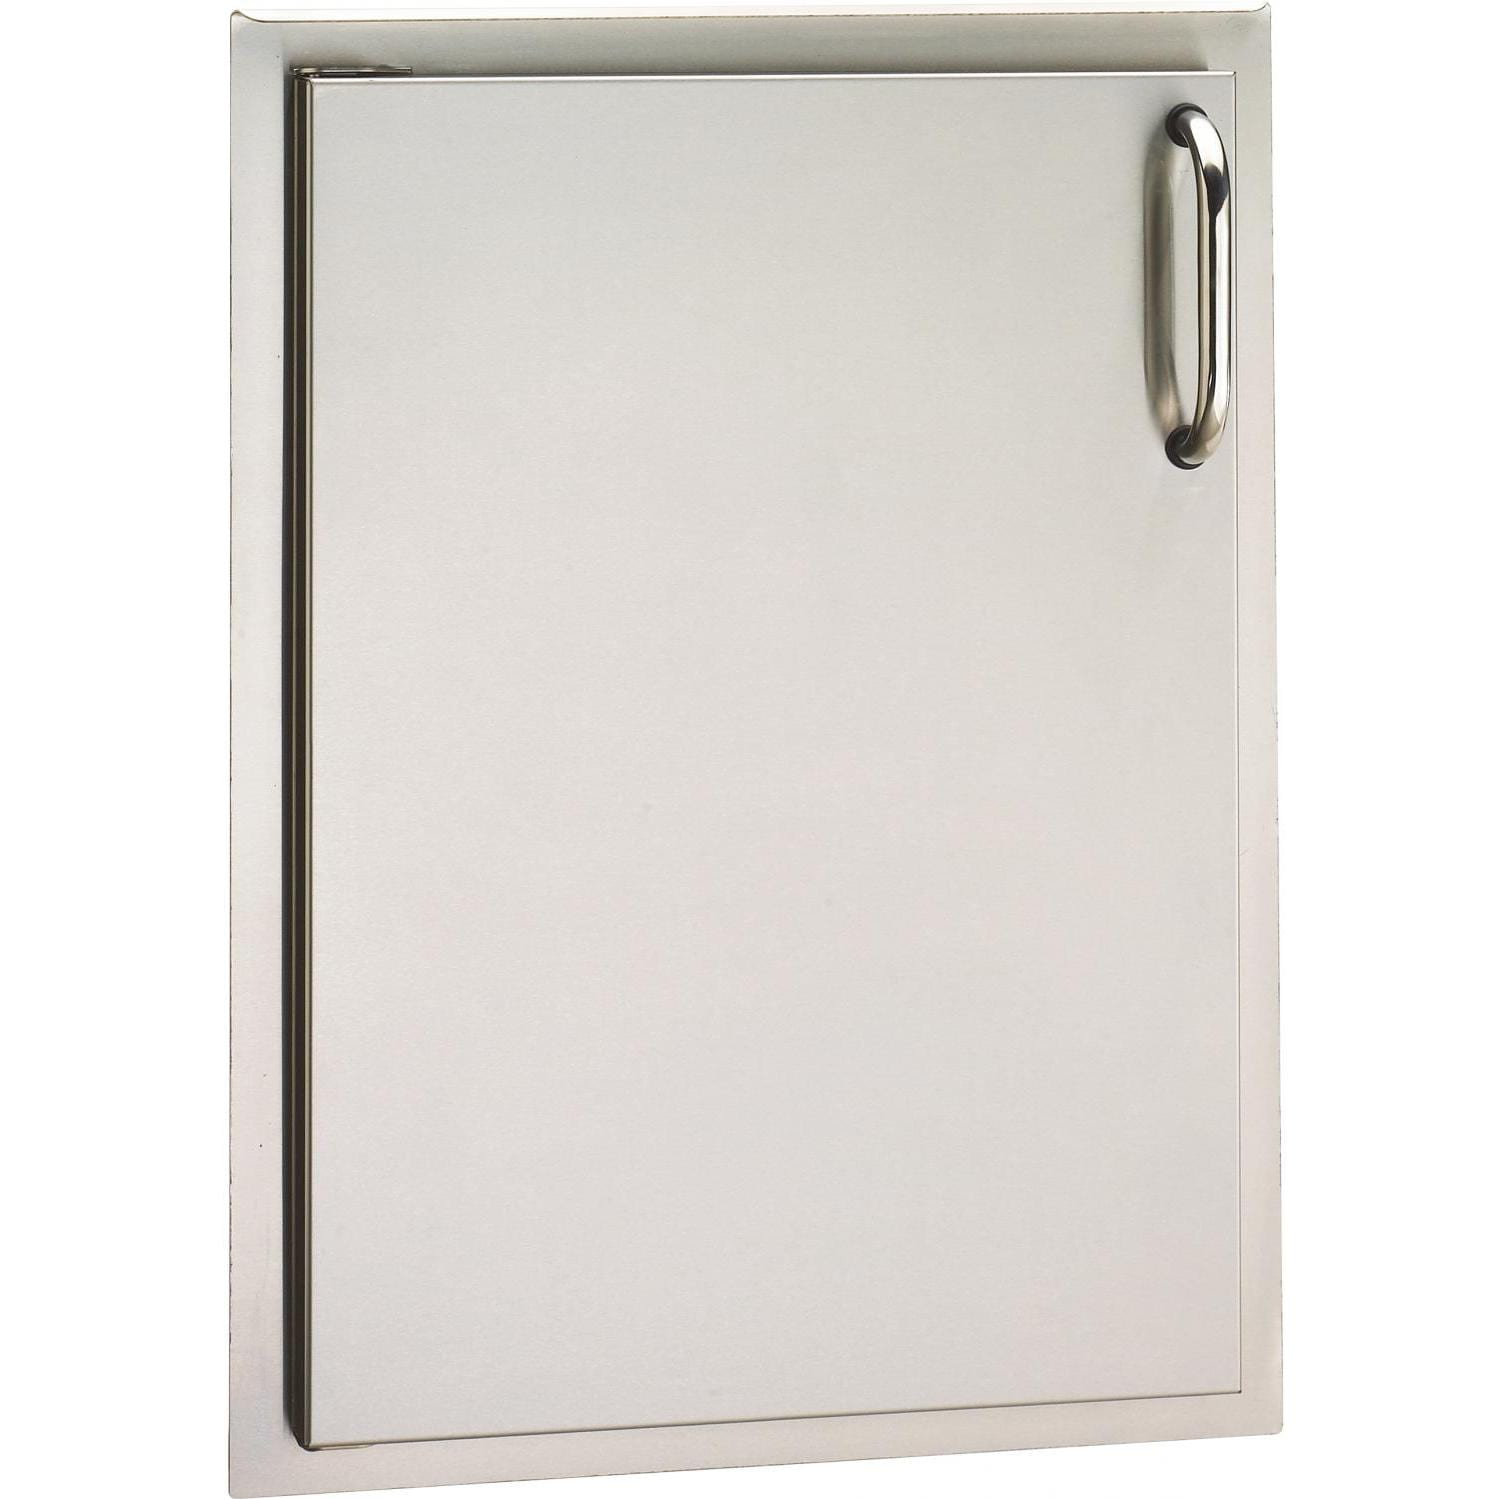 Fire Magic Select 14-Inch Left-Hinged Single Access Door